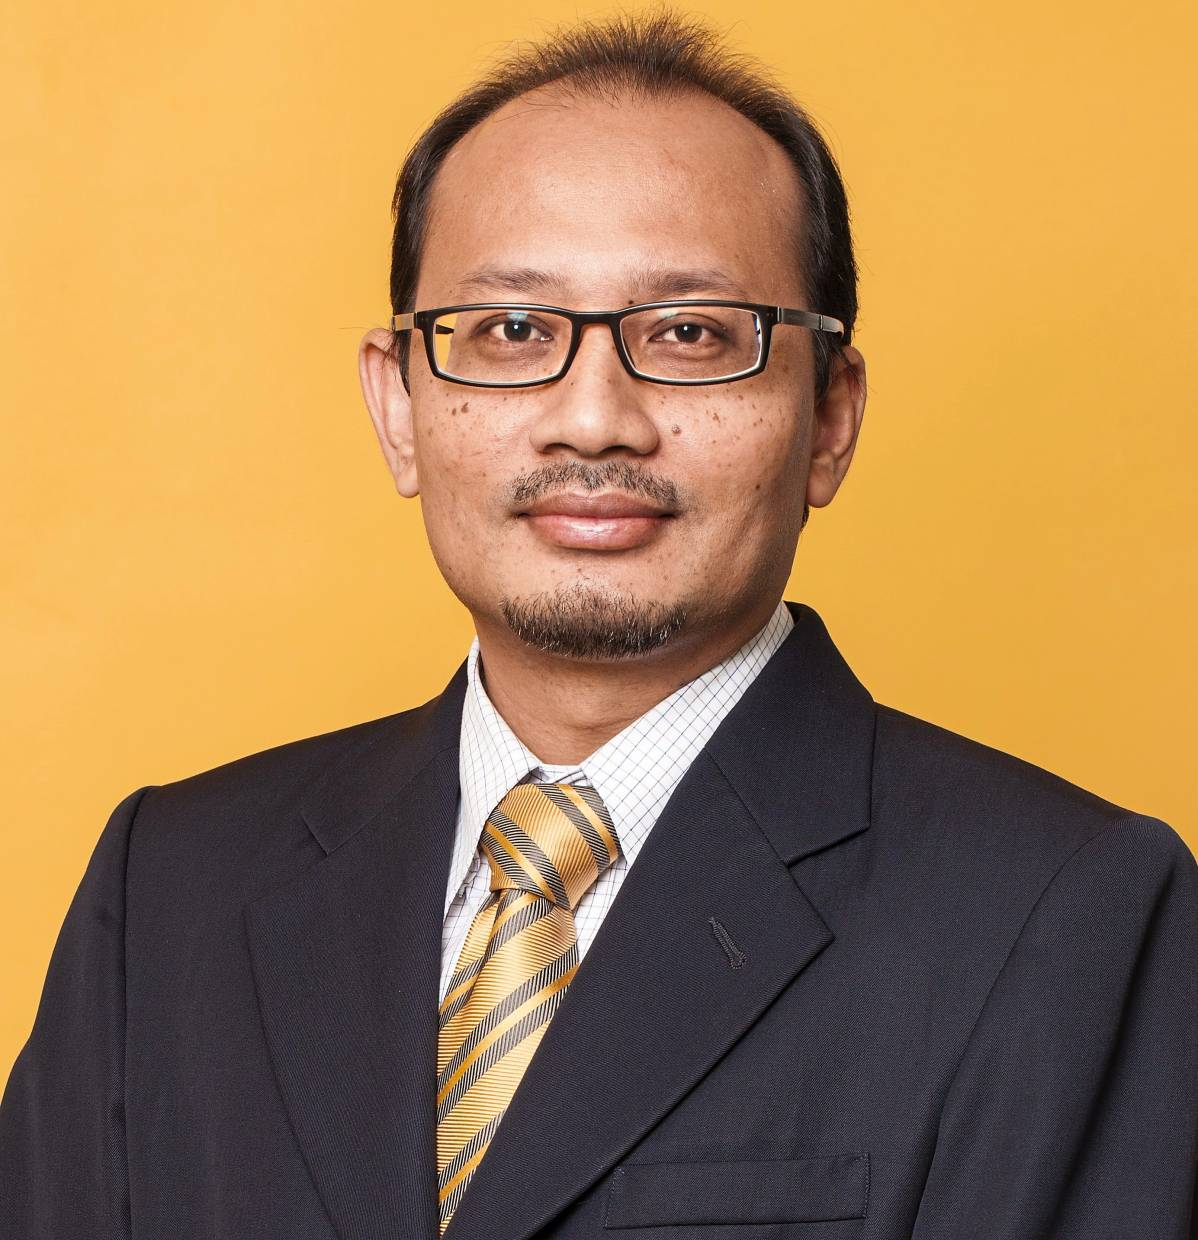 Suhaimi points out that the economy will continue to see commodity supply disruption in Q1.